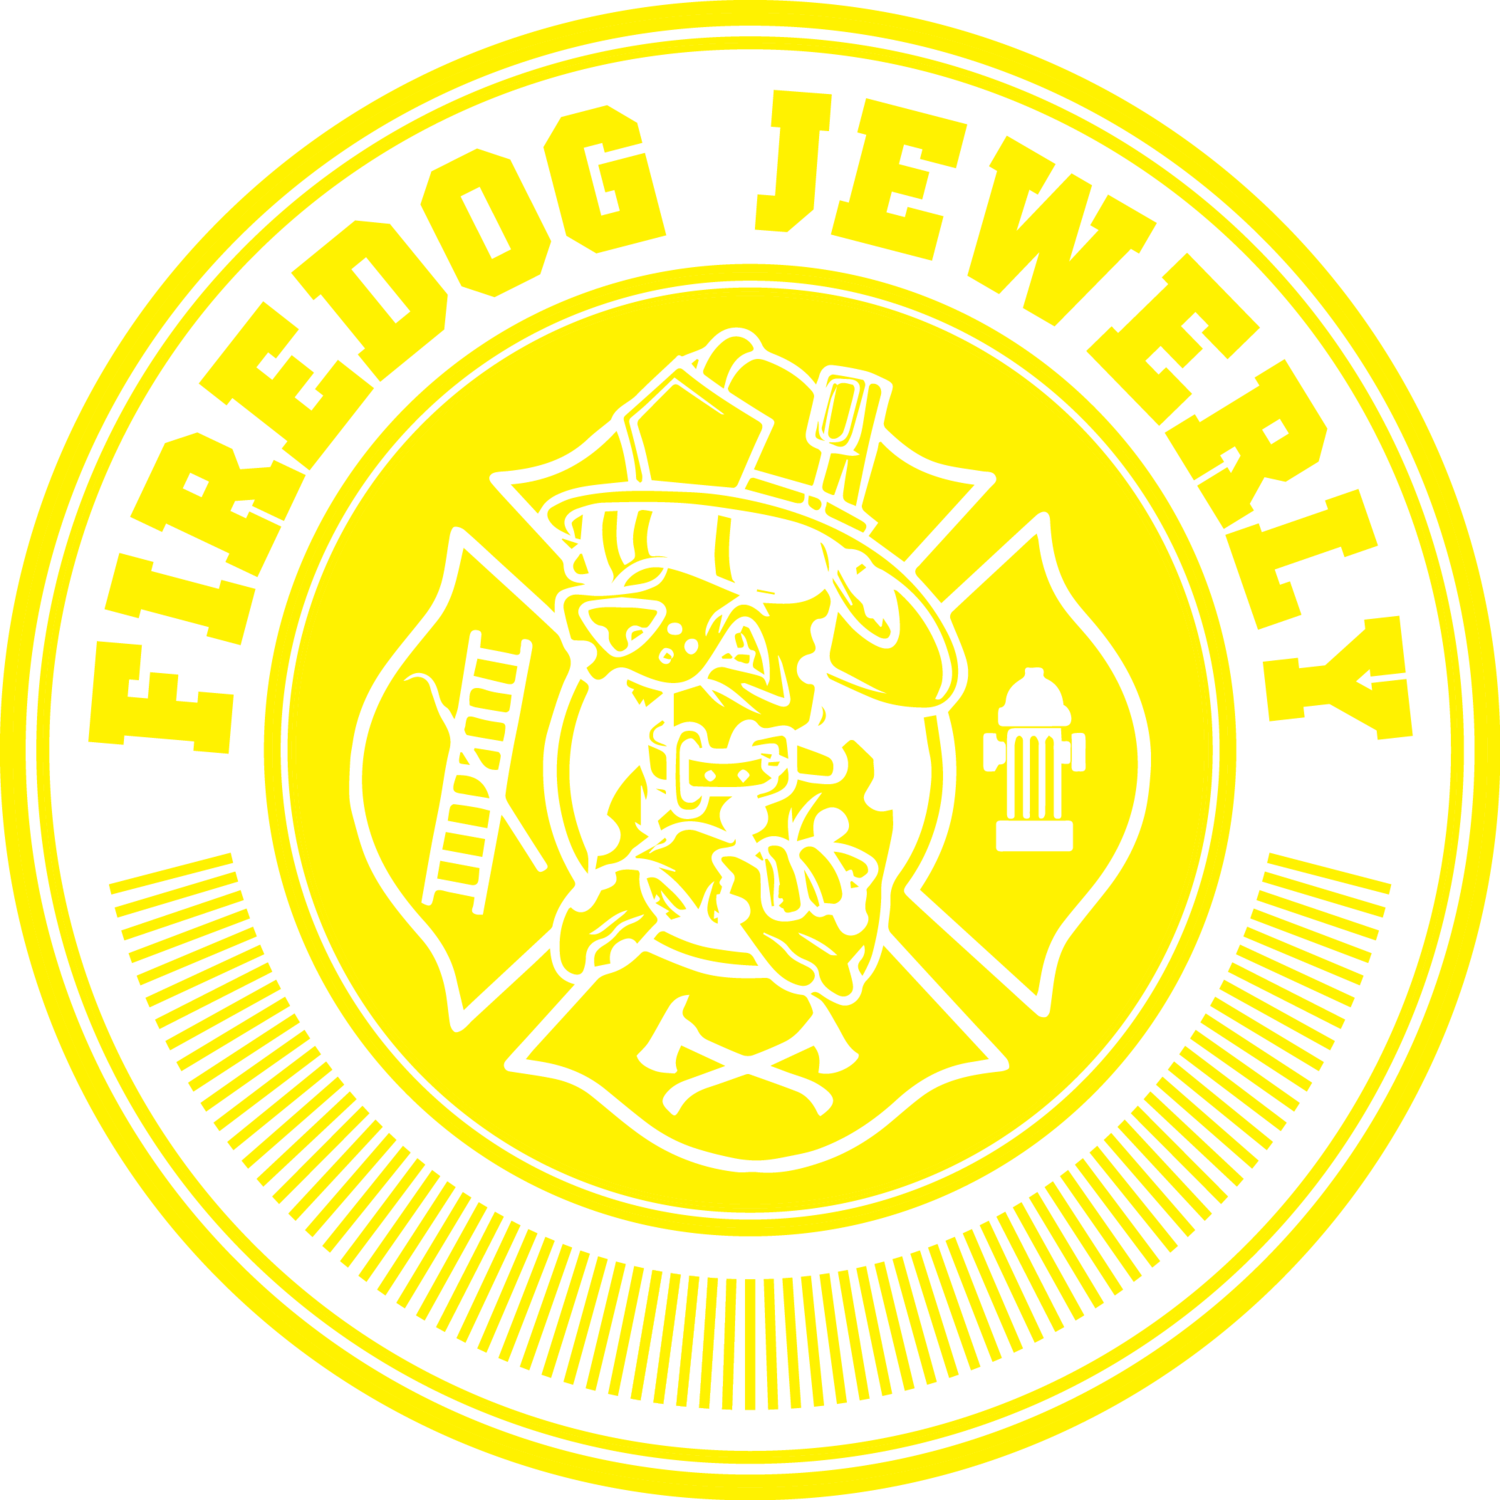 Firefighter Jewelry Custom Made For You! | Firedog Jewelry